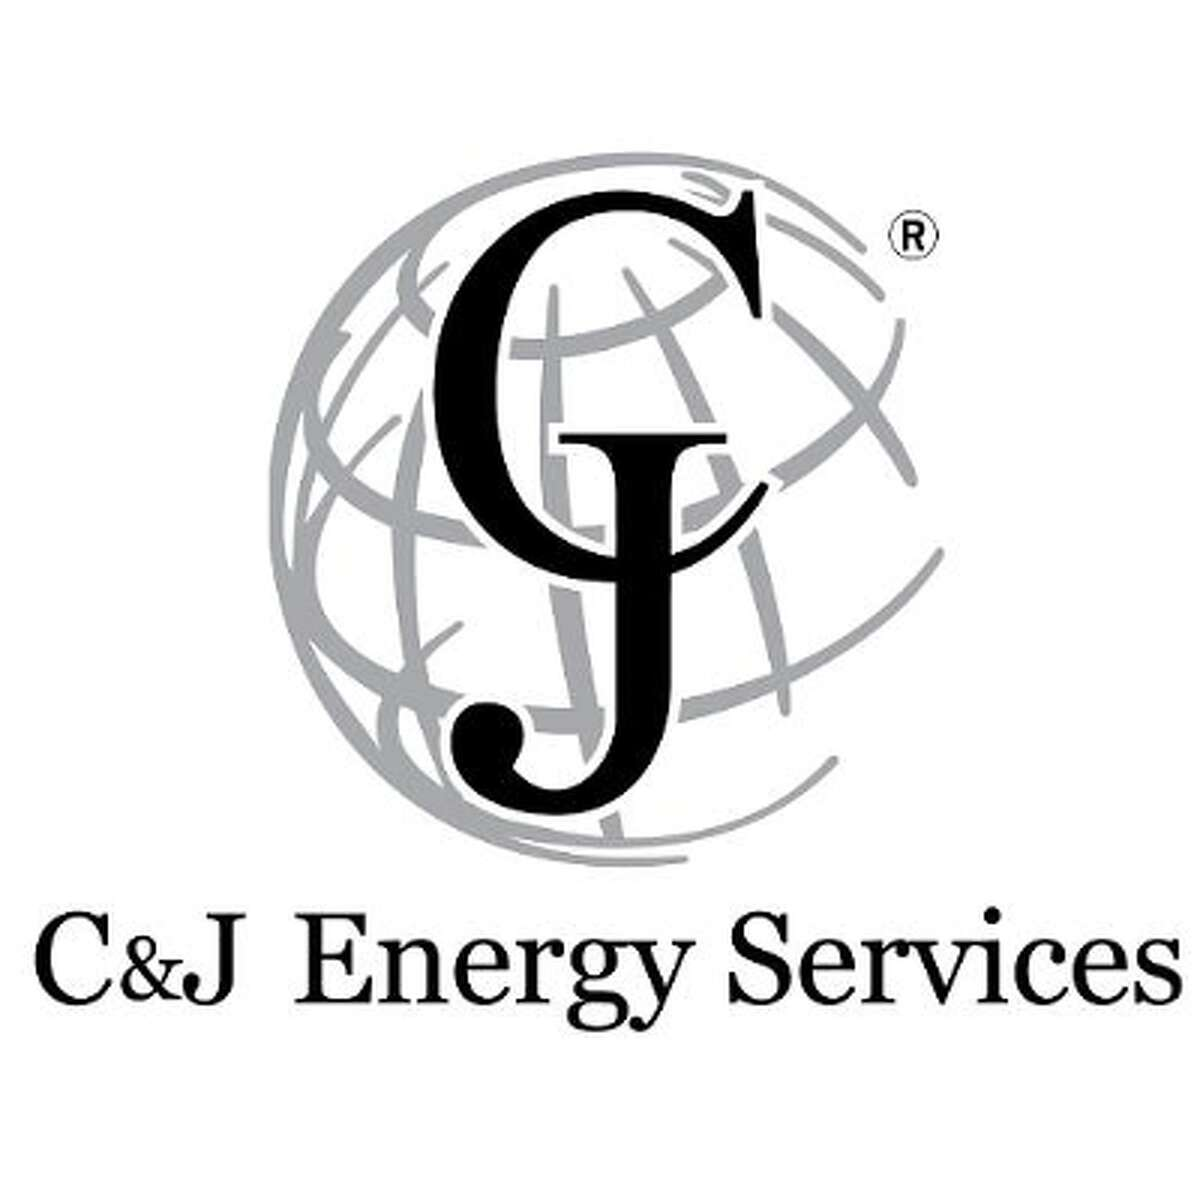 C&J Energy Services will combine with Keane Group.